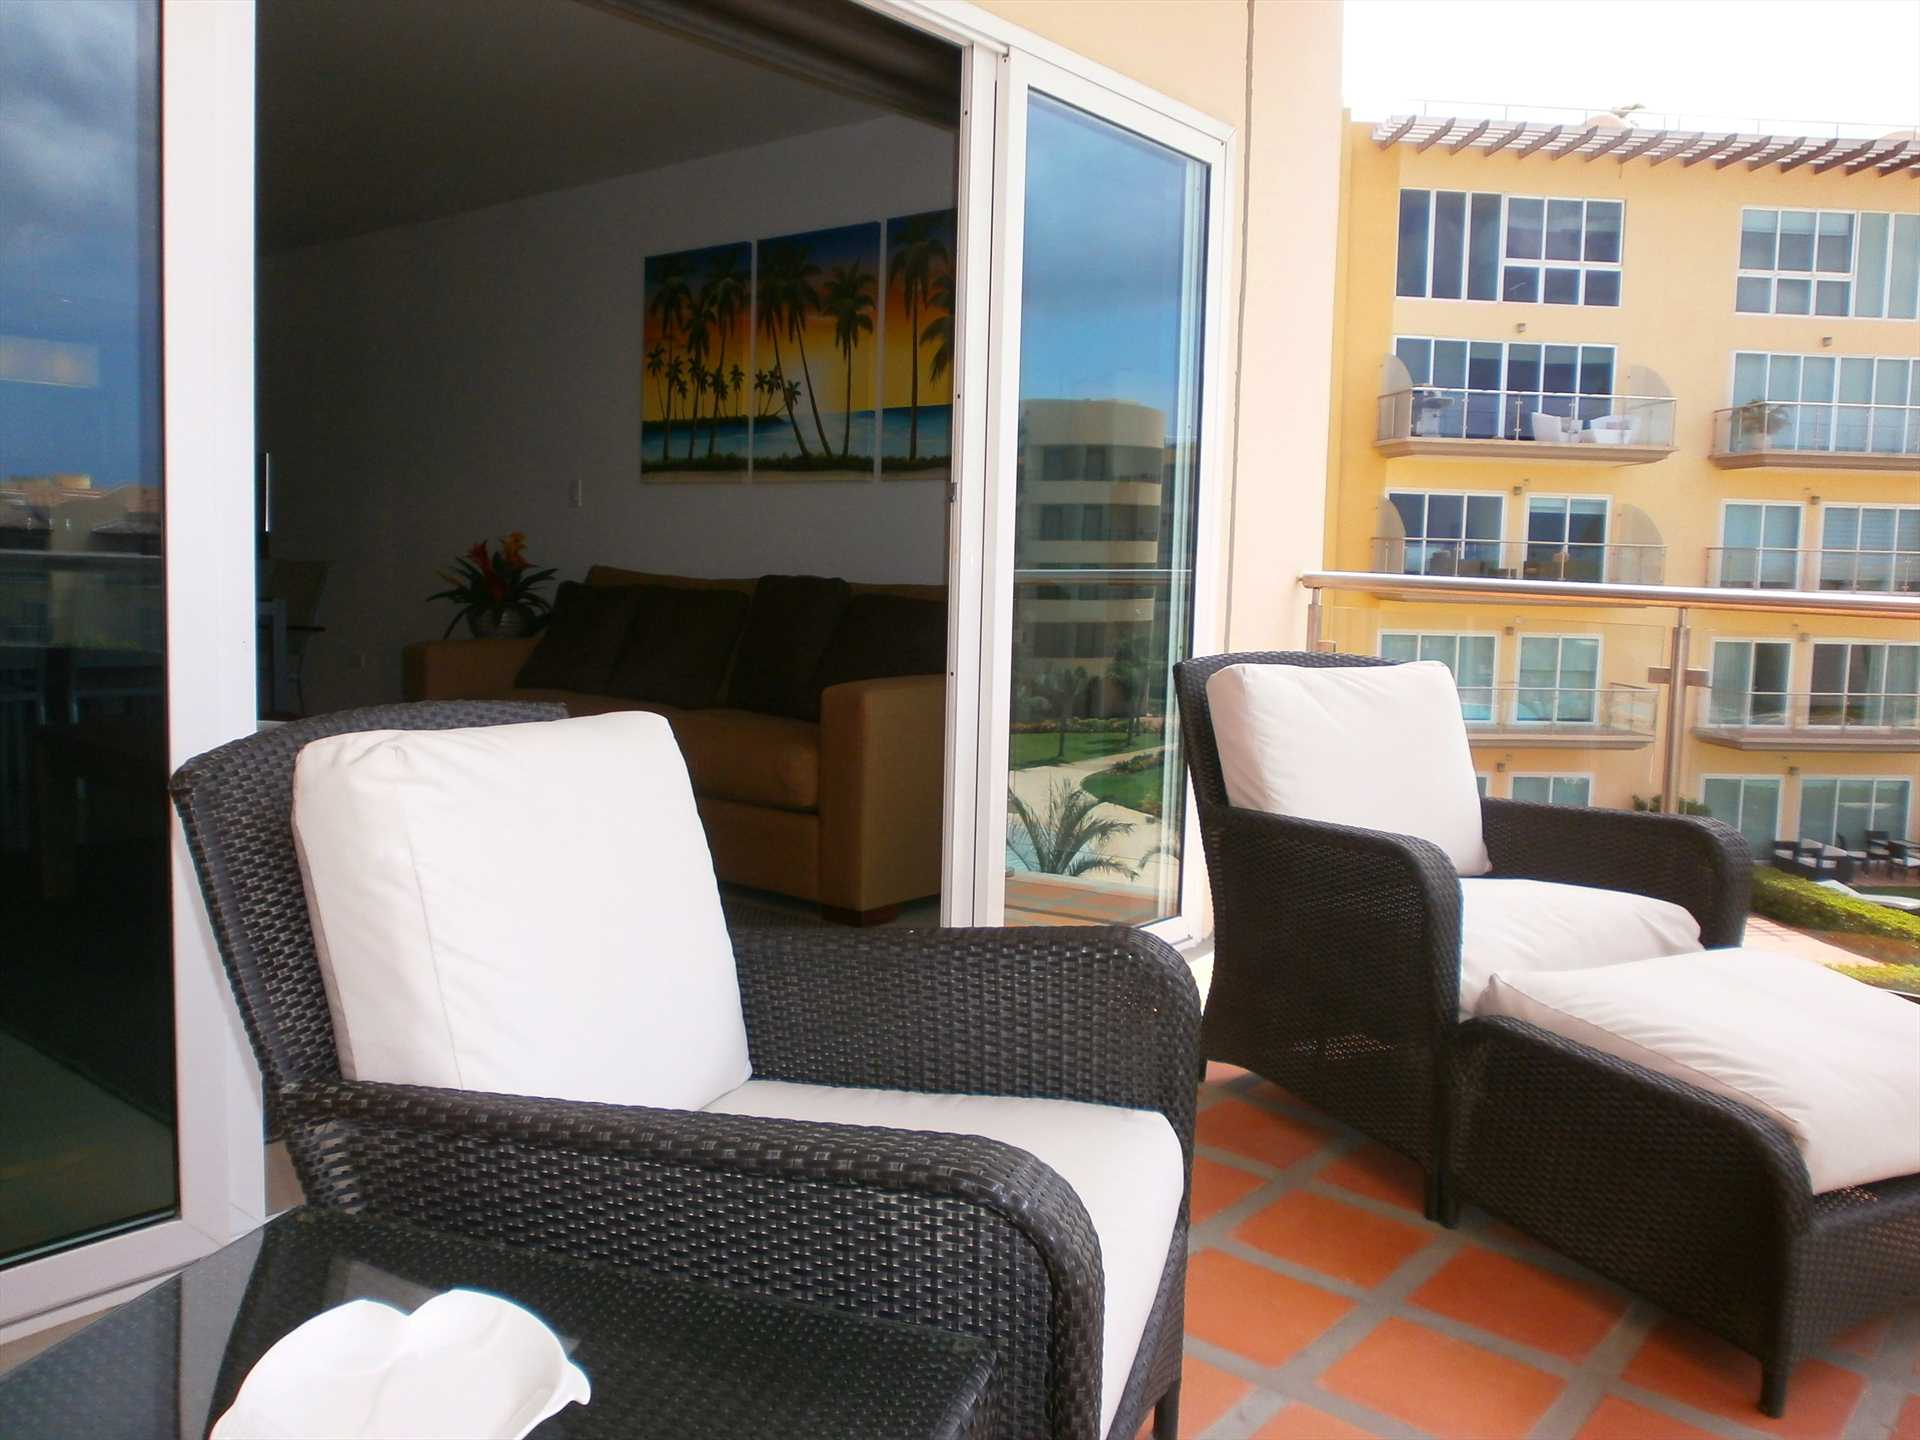 Lounging furniture on the balcony to enjoy the view!